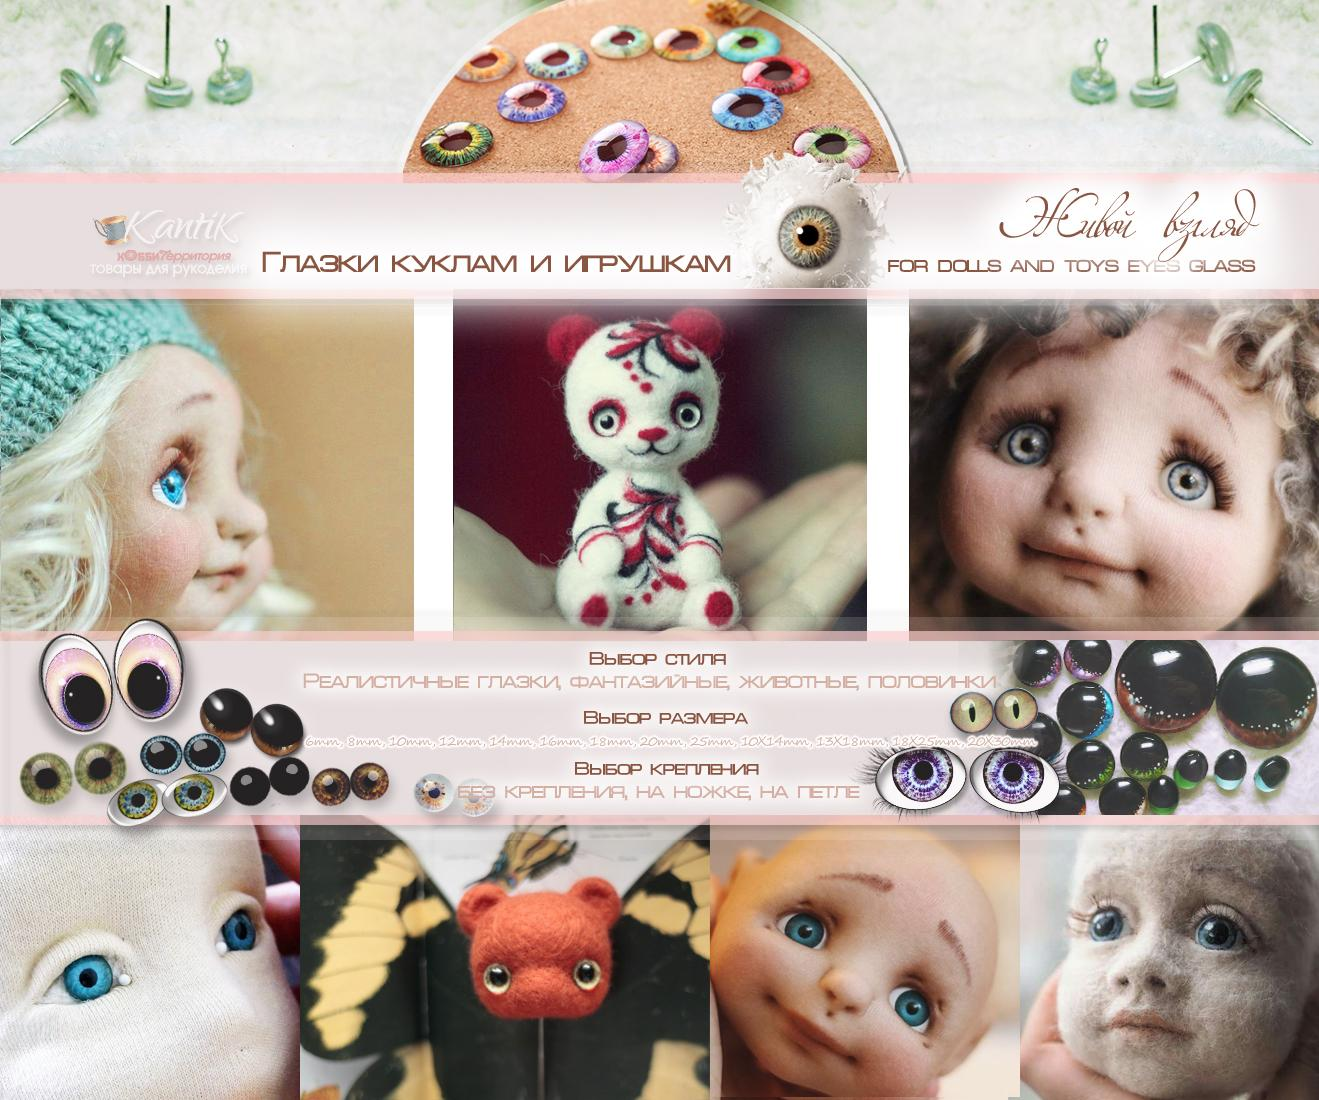 http://www.kantik.com.ua/images/jrl/for%20dolls%20and%20toys%20eyes%20glas.jpg